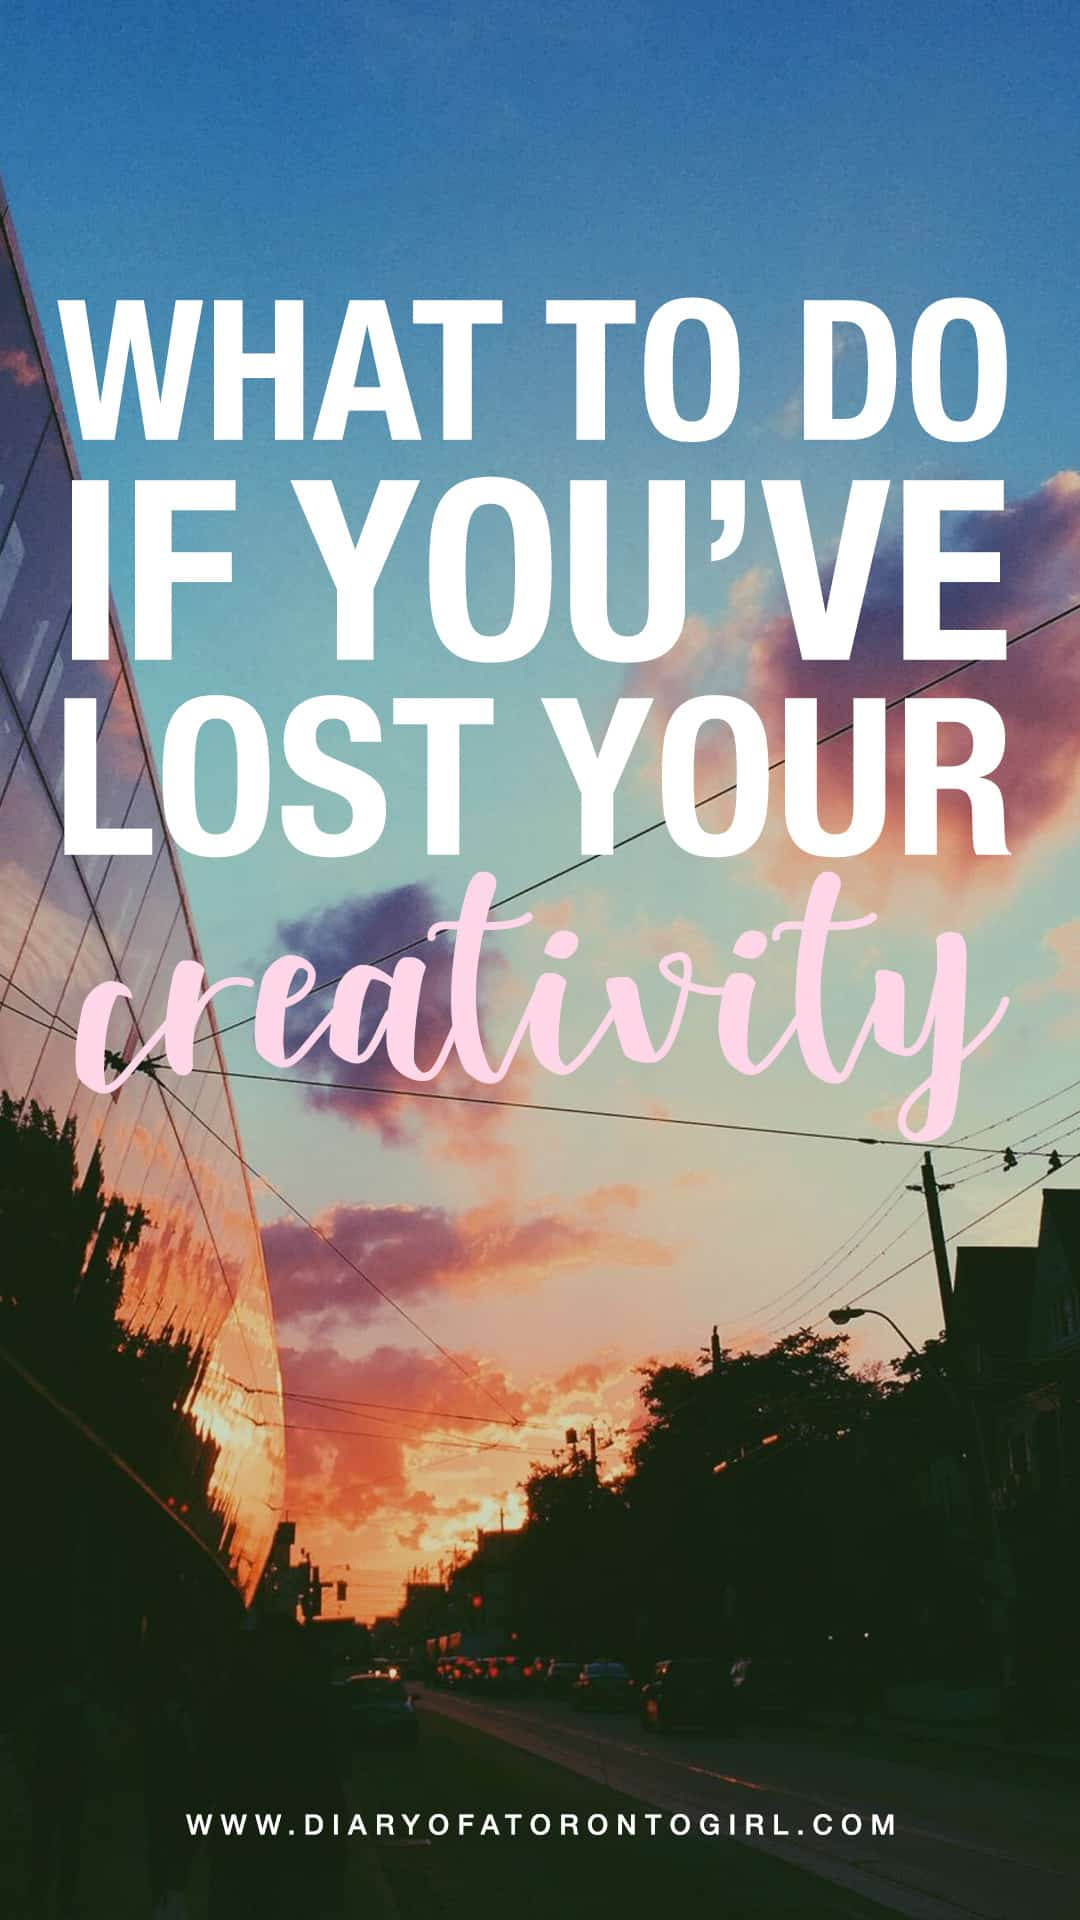 Lost your creativity and trying to get it back? Here are tips on how to get out of your block if you've lost your creative spark.